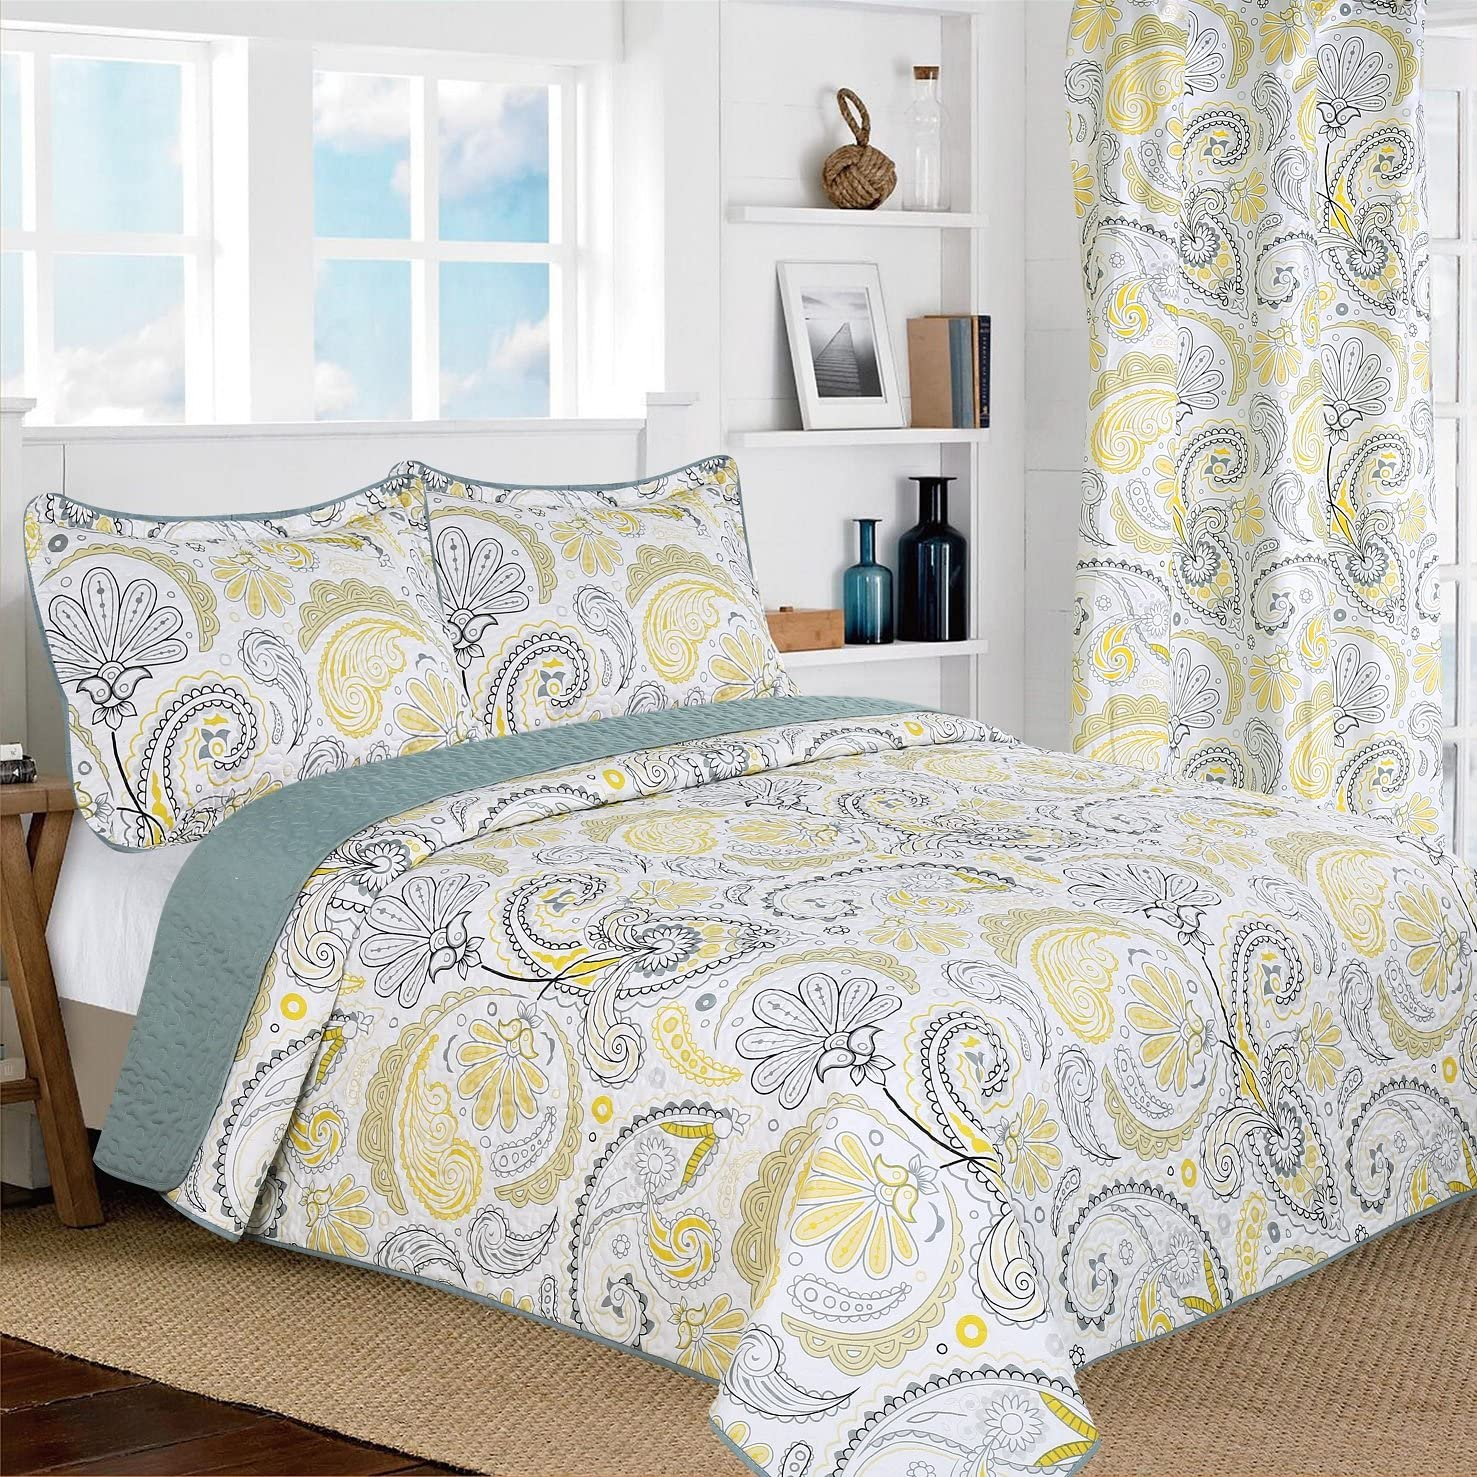 Queen//Full Size Pillow Sham All American Collection New 3pc Plaid Printed Reversible Bedspread//Quilt Set